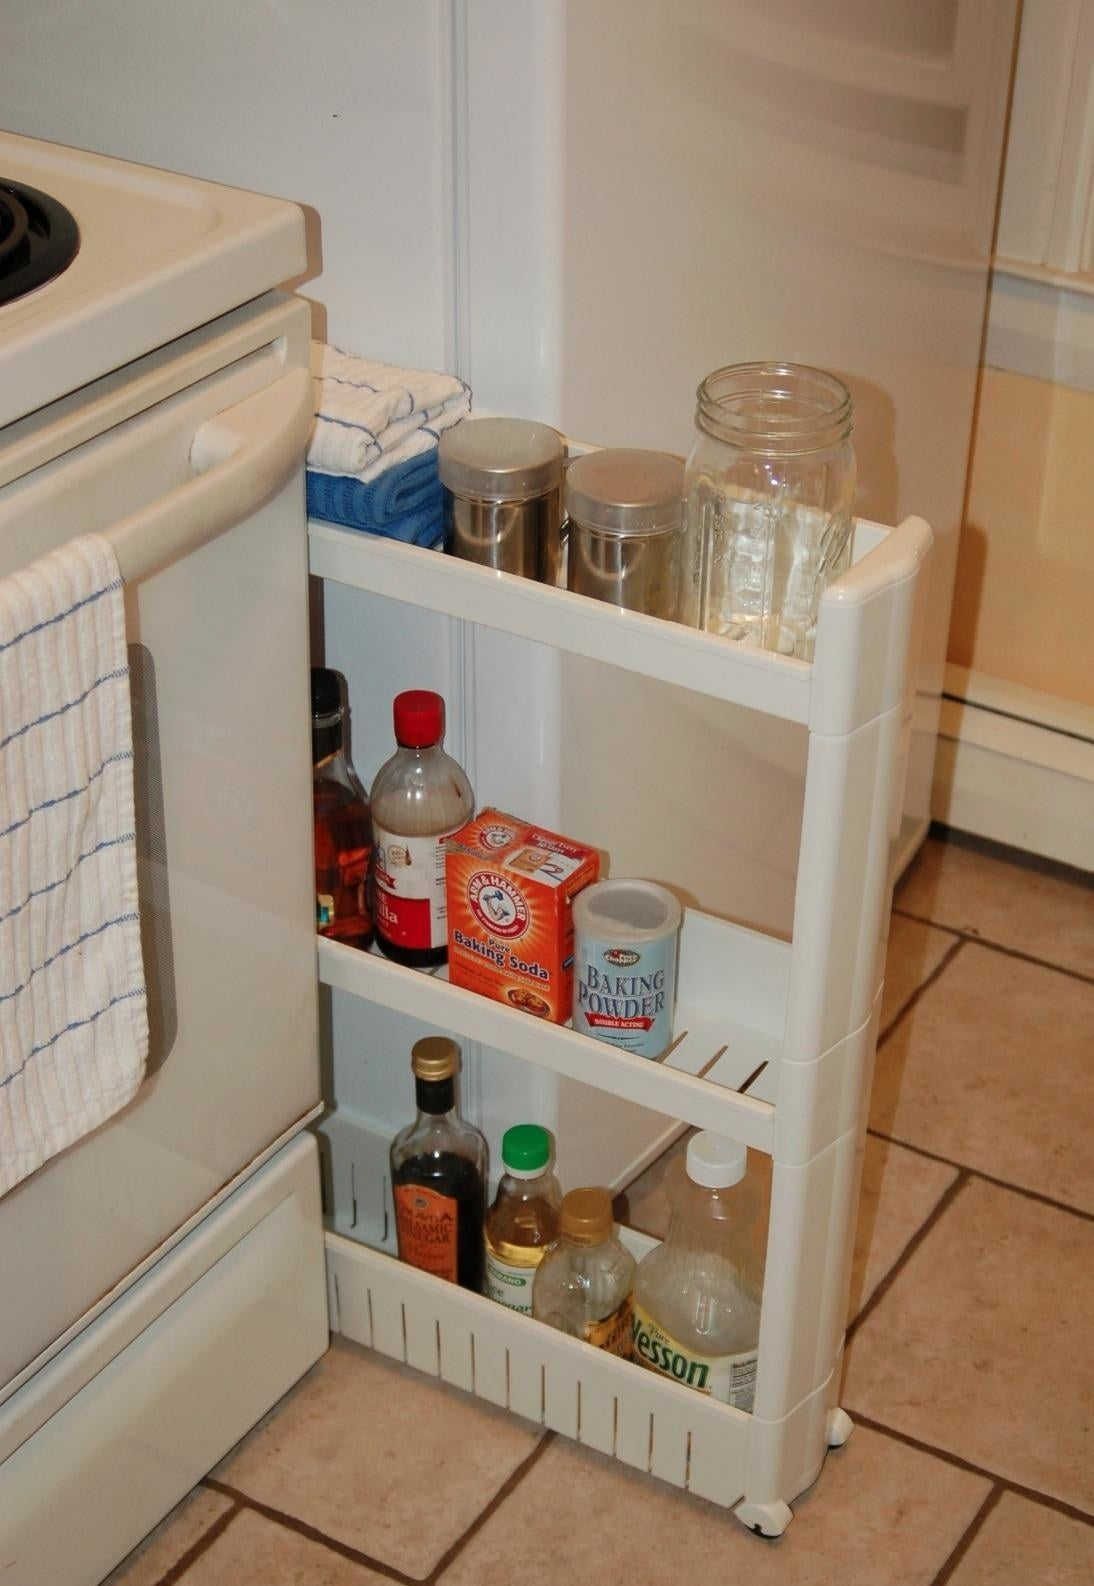 Reviewer photo of the storage tower with three shelves filled with food and cooking ingredients between a stove and fridge